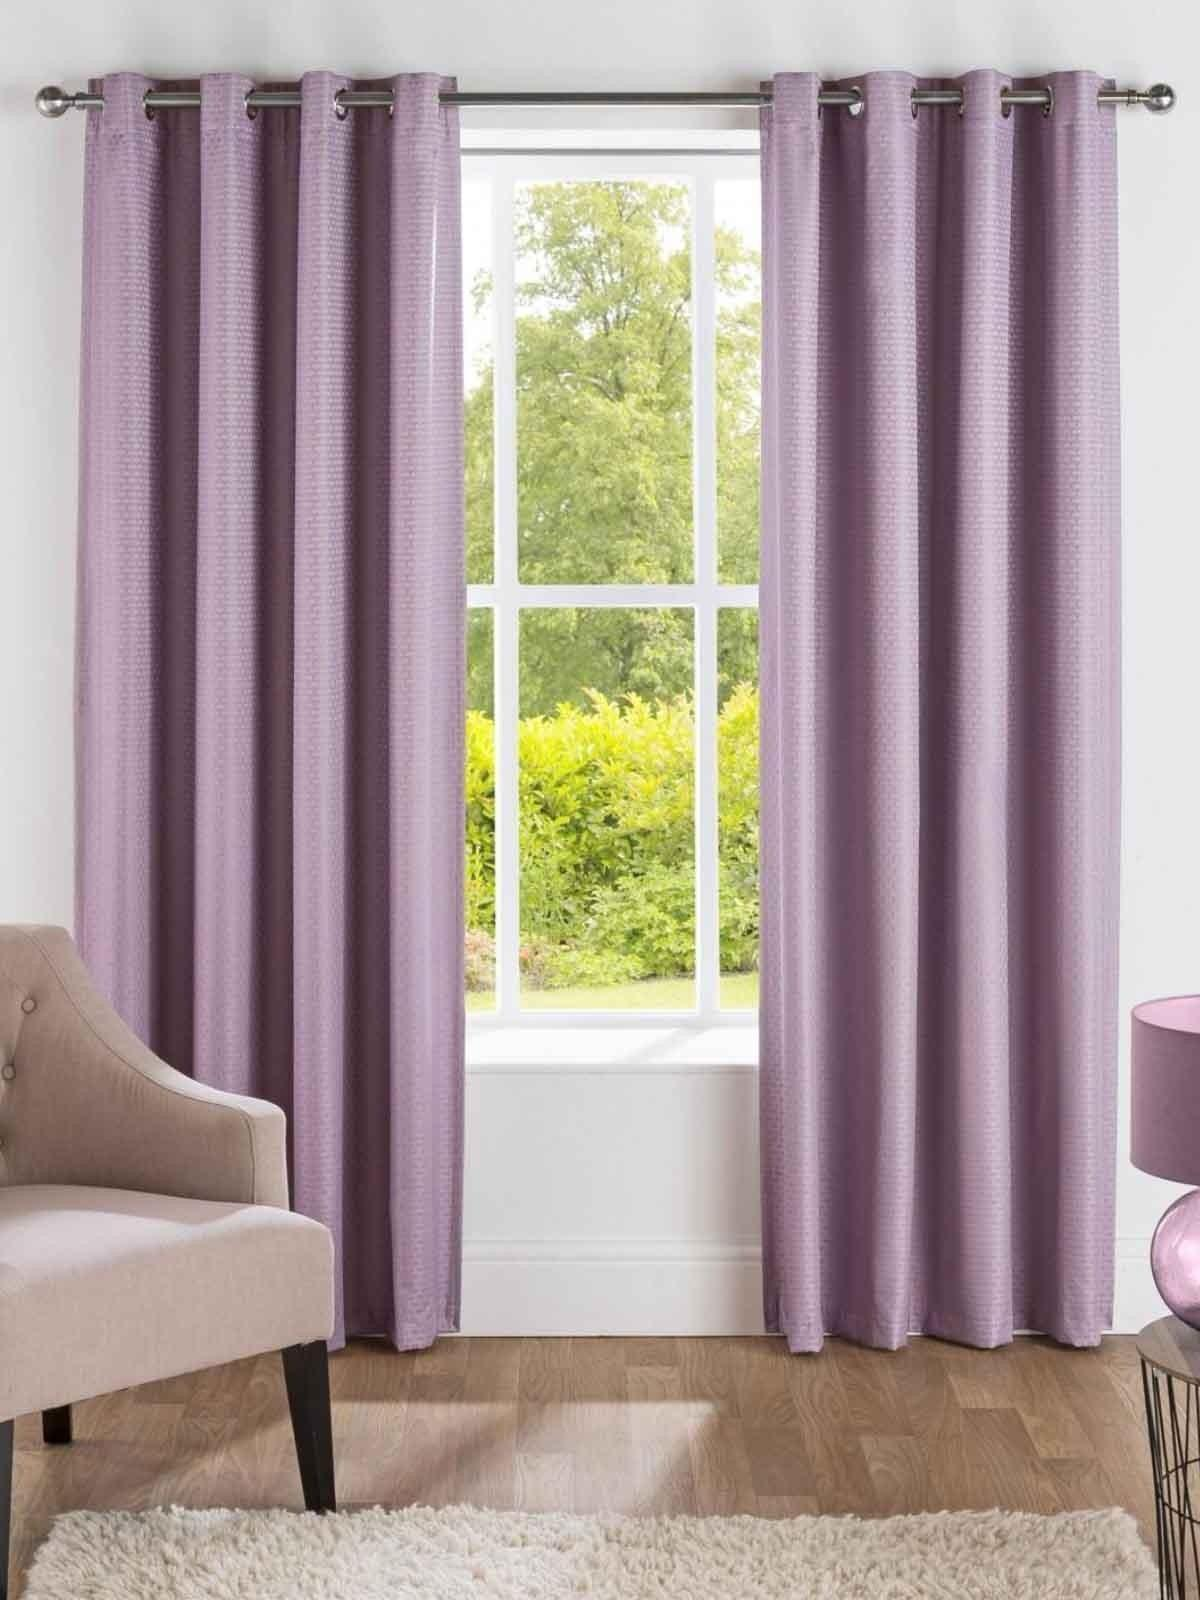 Serene Thermal Blackout Eyelet Curtains Heather Ponden Home